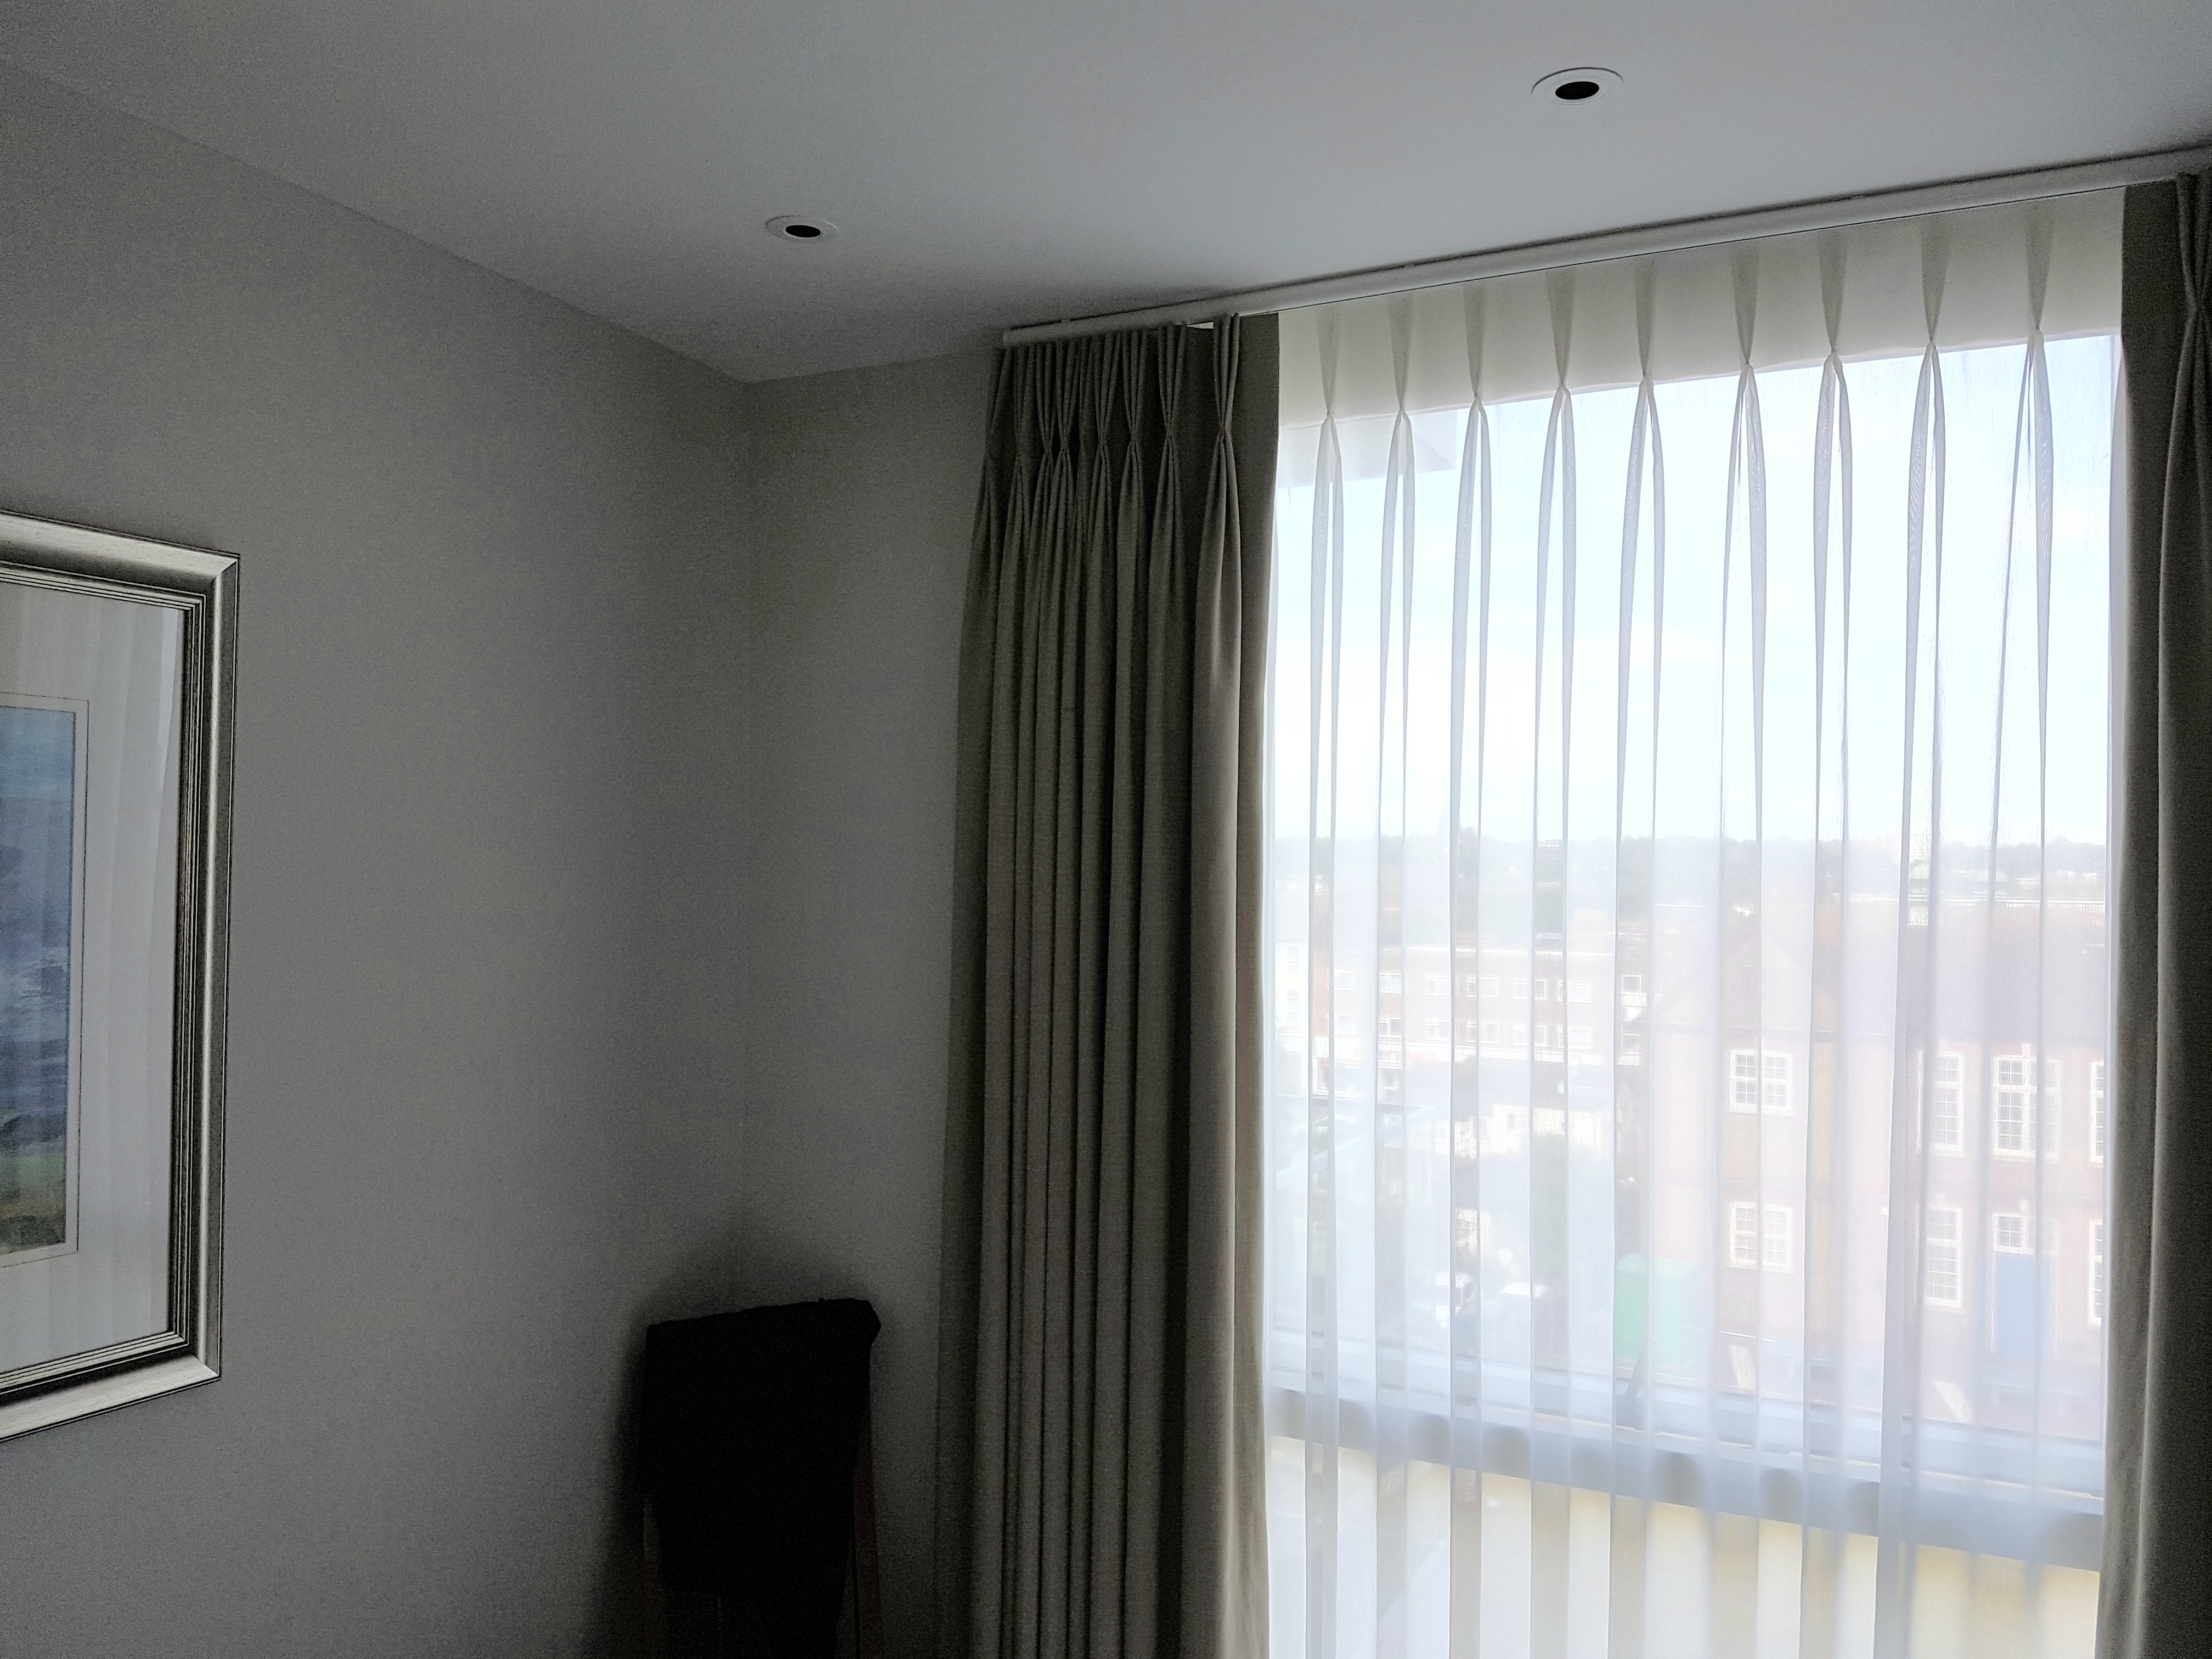 Bespoke Curtains, cotton fabric curtains lined and sheer curtains to track and pole